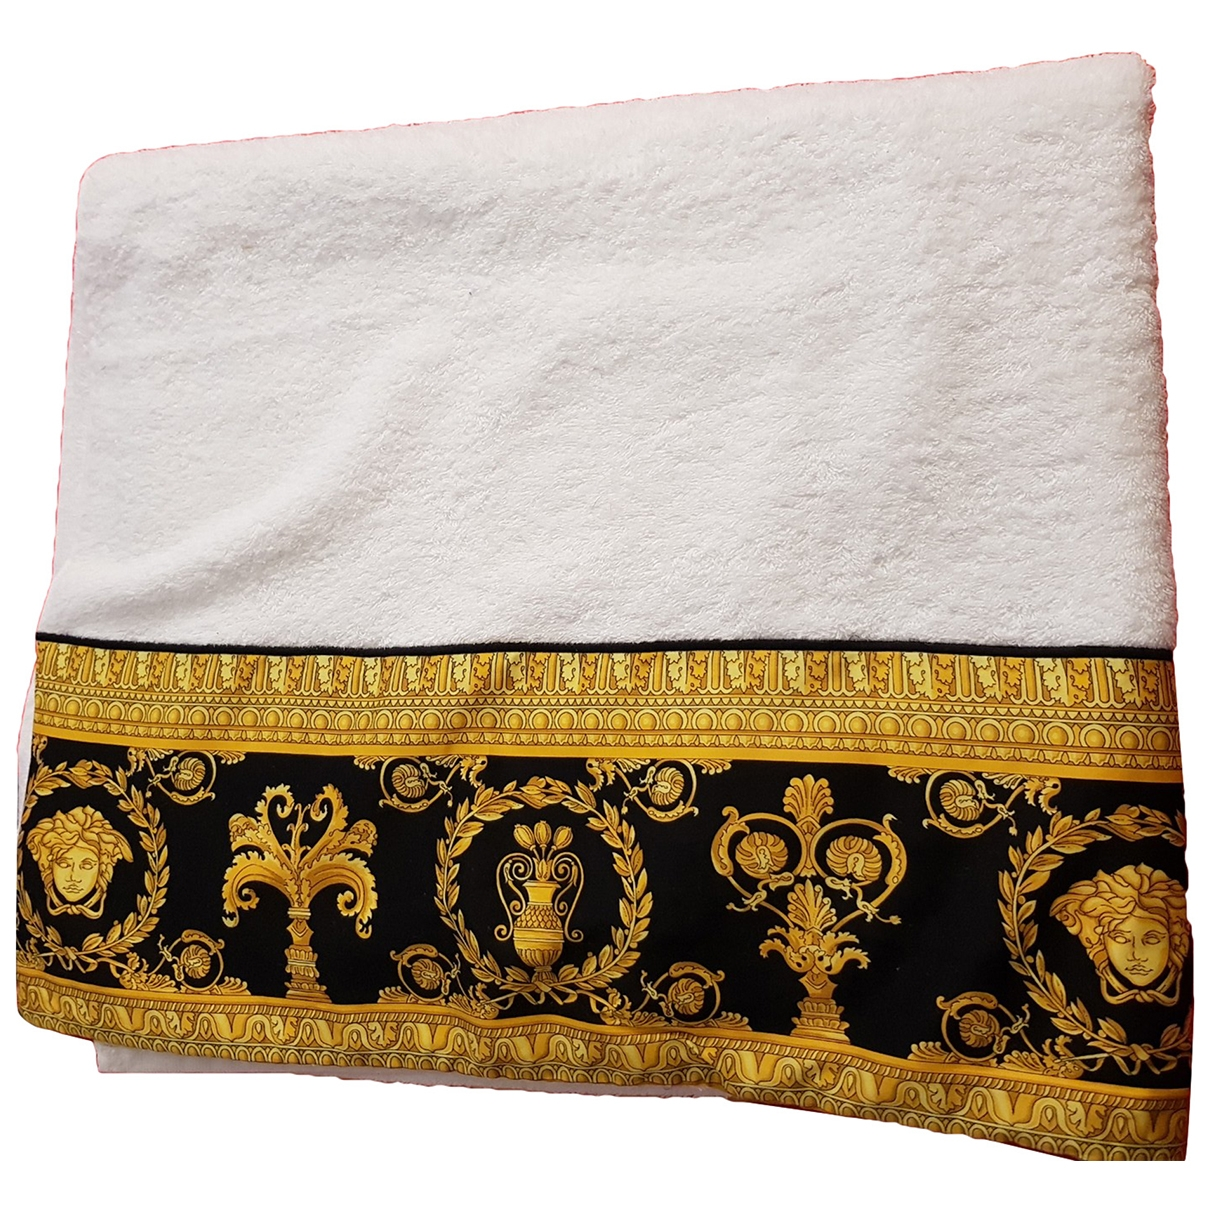 Gianni Versace \N White Cotton Textiles for Life & Living \N